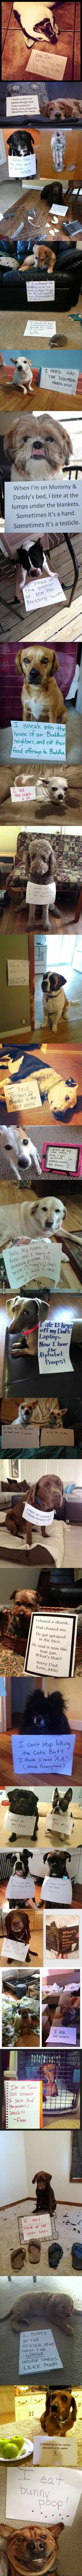 F u start stopping dog shaming or any animal shaming Cute Funny Animals, Funny Animal Pictures, Funny Cute, Funny Dogs, Super Funny, Funny Dog Shaming, Dog Shaming Photos, Cute Puppies, Cute Dogs